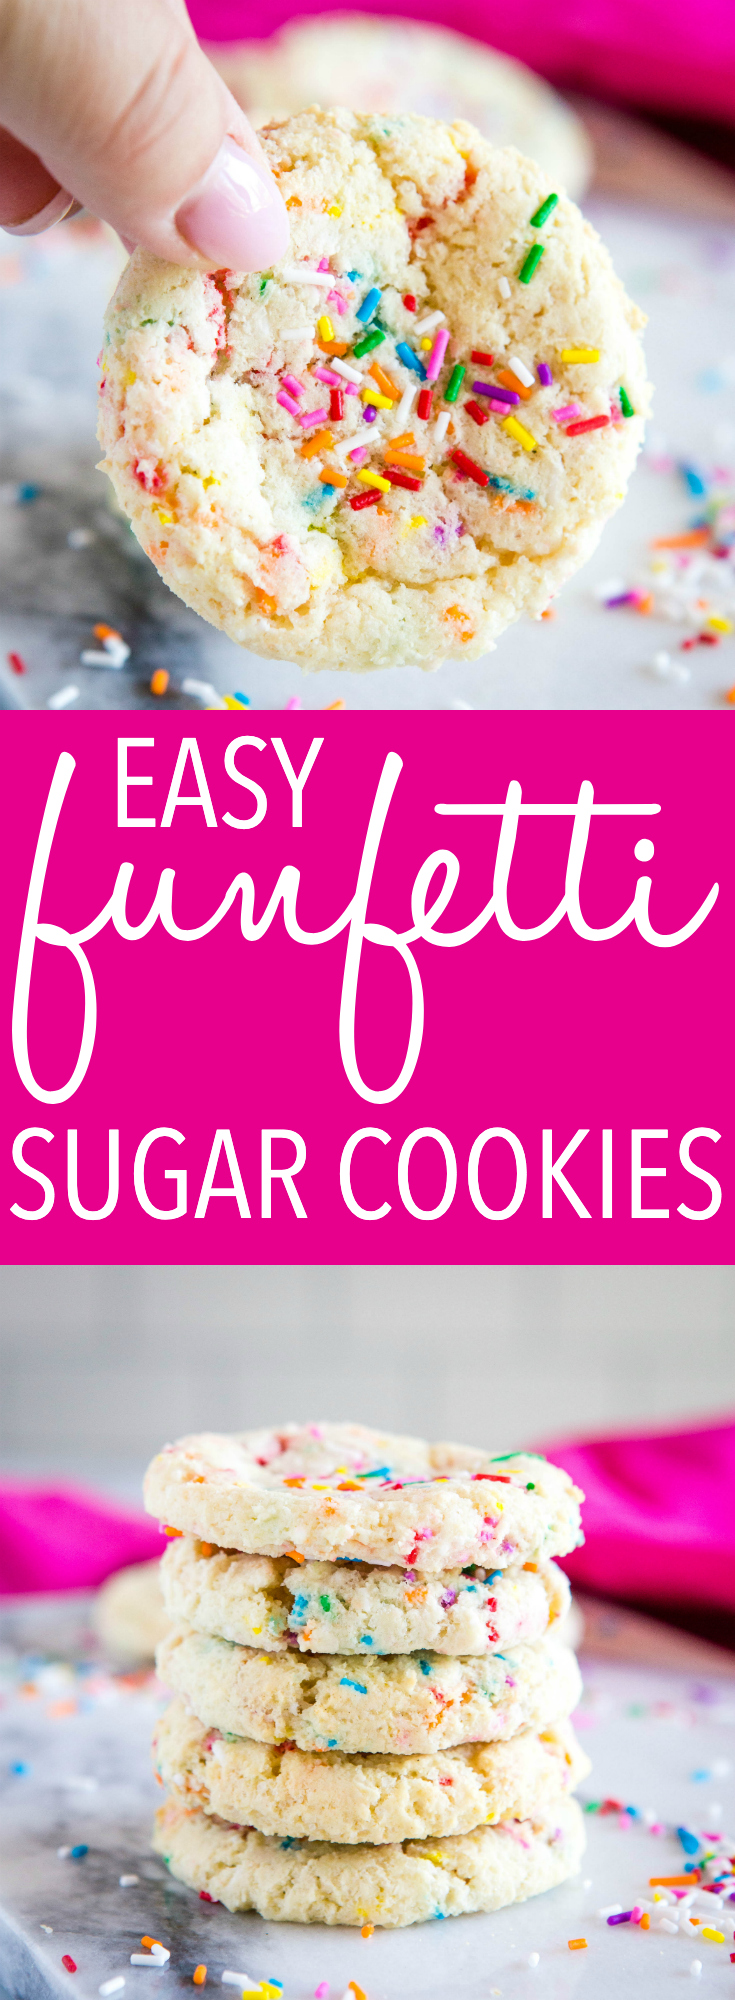 These Easy Funfetti Sugar Cookies are the perfect birthday cake-inspired sugar cookies with sprinkles - no chilling, rolling or cutting required! Recipe from thebusybaker.ca! #sugarcookies #cookies #dropcookies #dessert #sweet #treat #kidfriendly #sprinkles #sprinklecookies via @busybakerblog